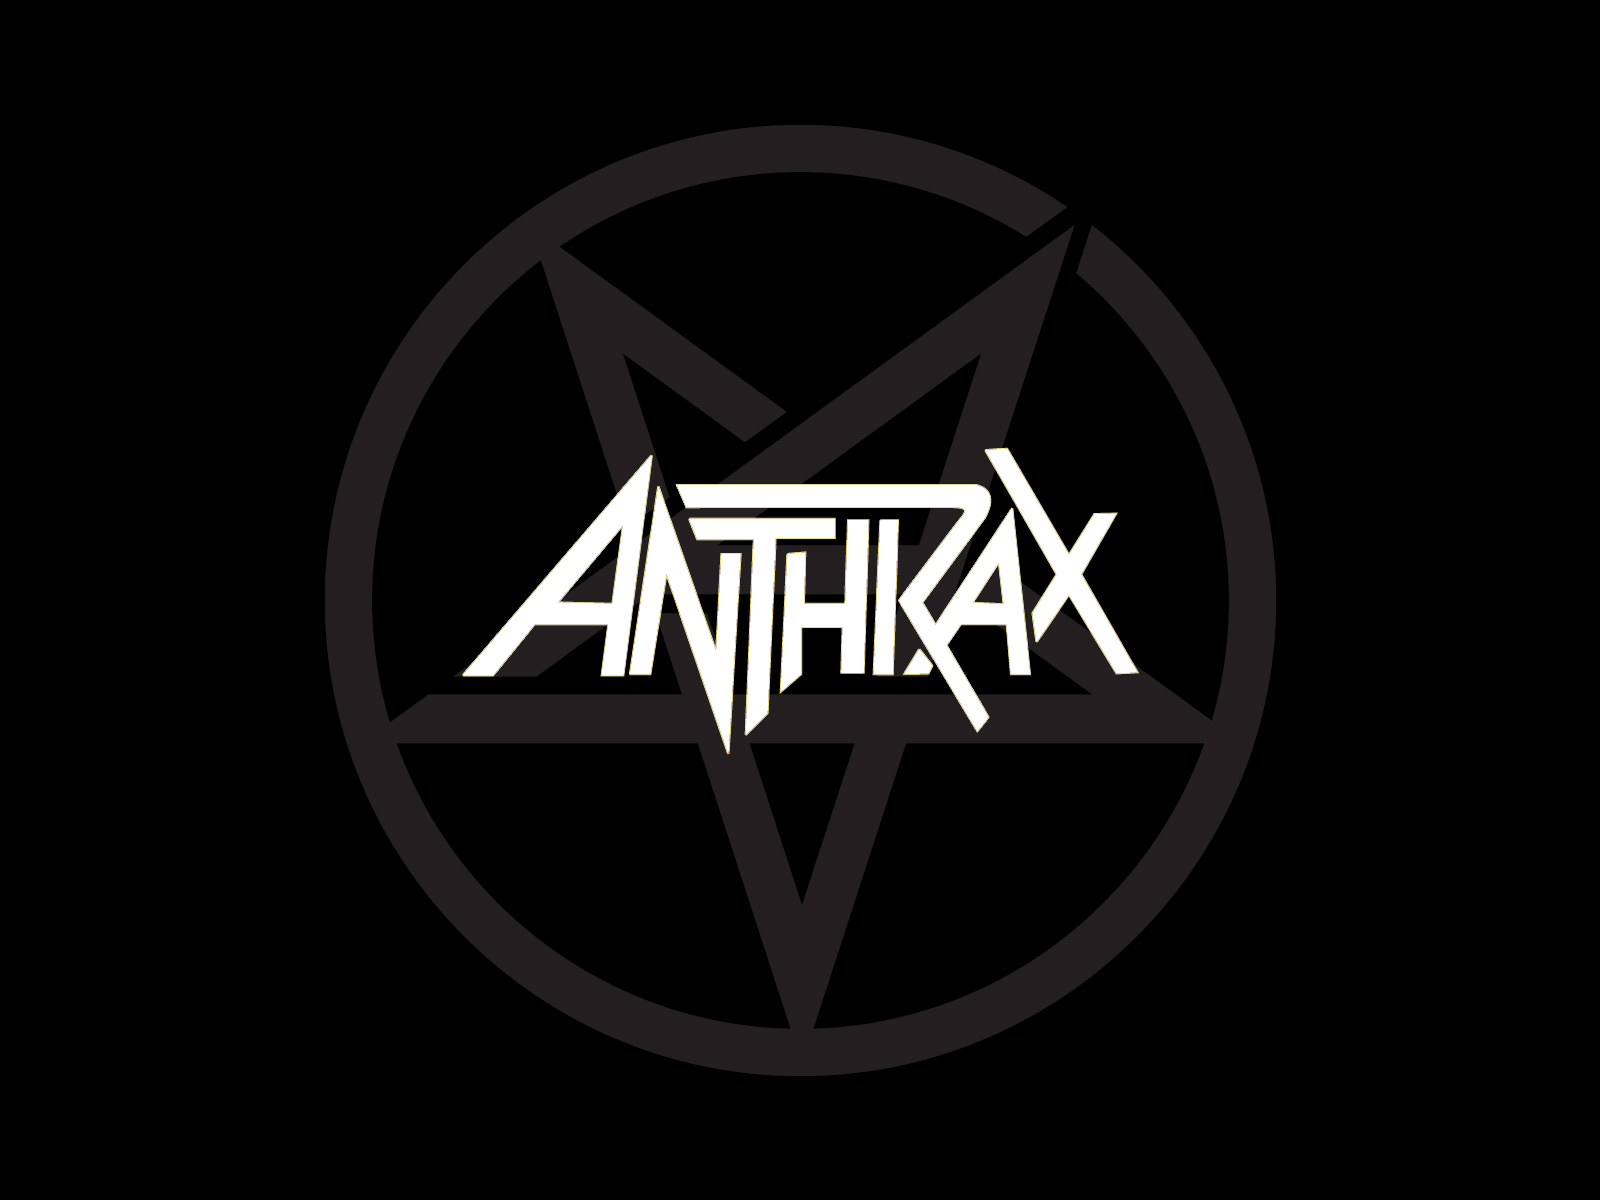 Anthrax Wallpapers and Background Images   stmednet 1600x1200